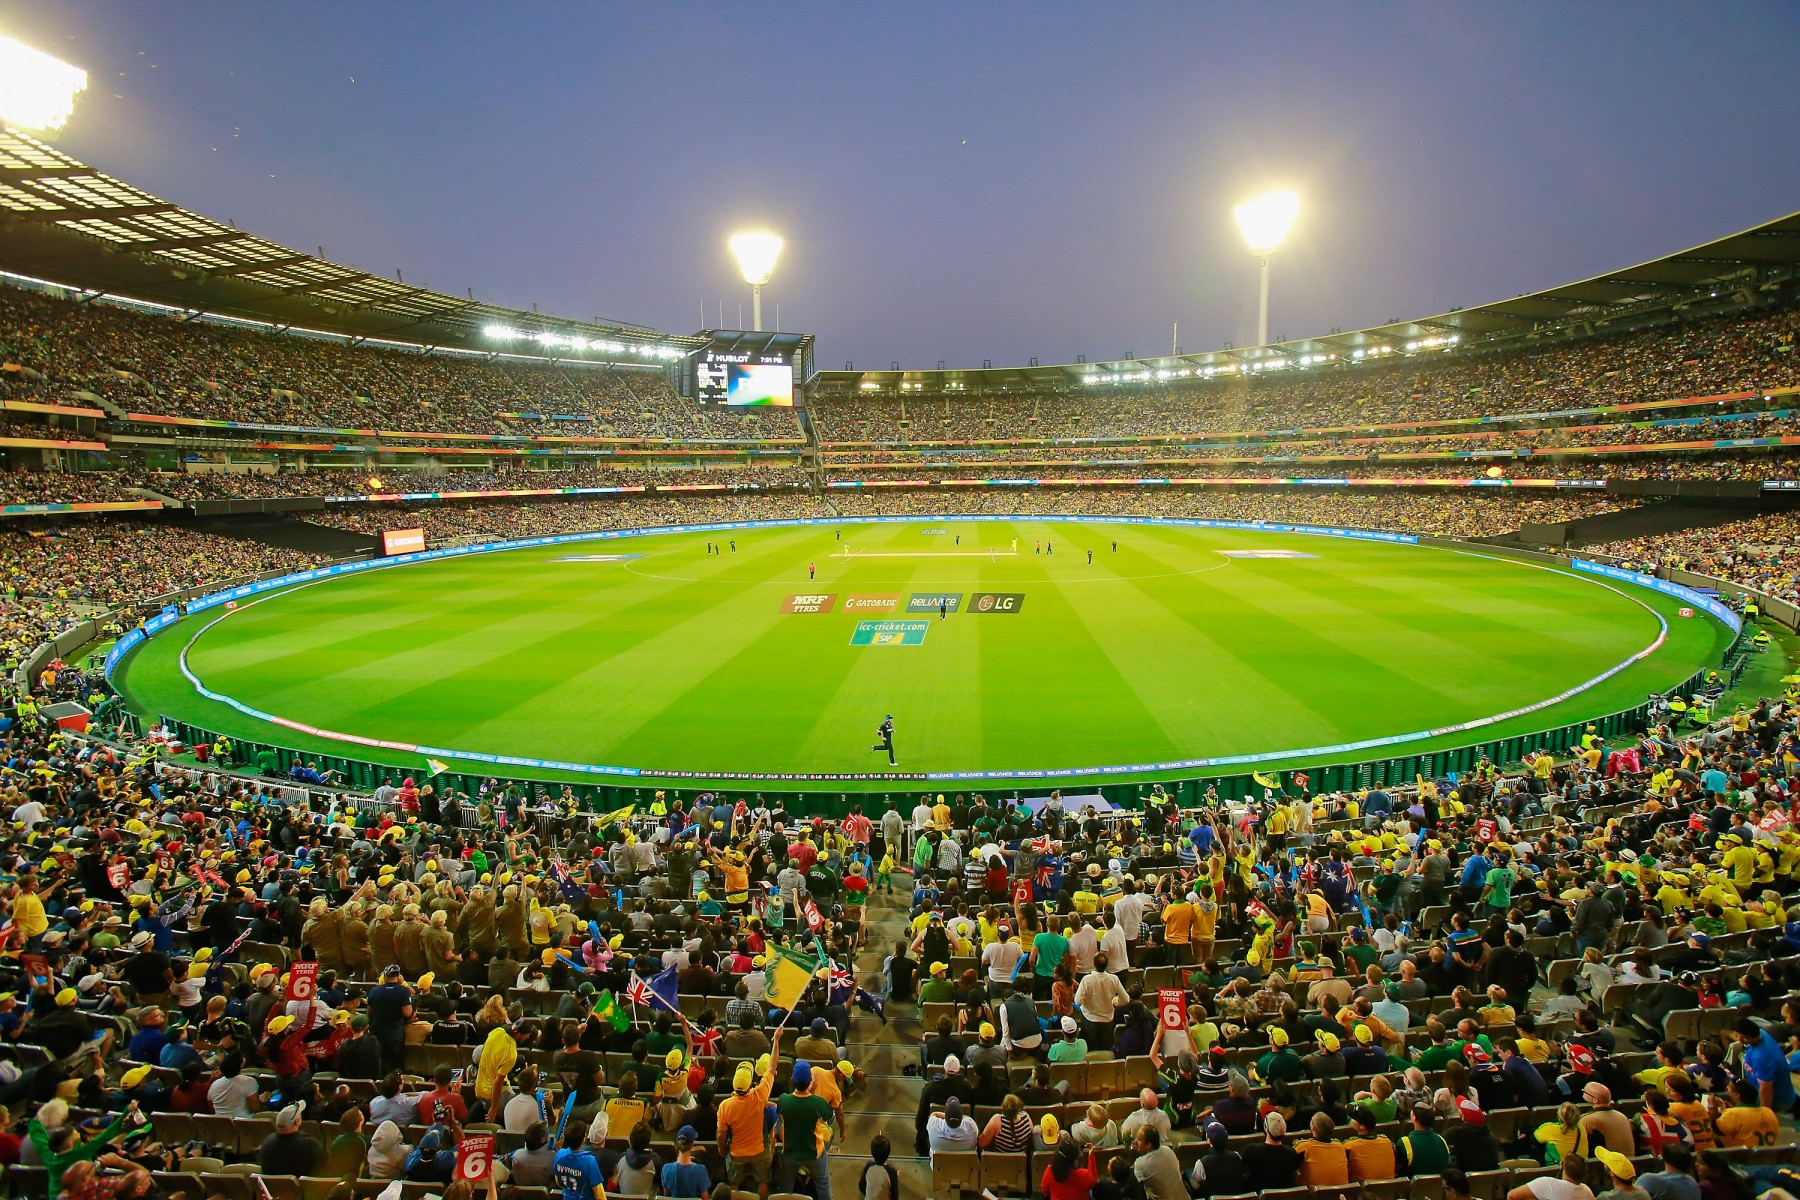 2015 ICC Cricket World Cup final match between Australia and New Zealand at the Melbourne Cricket Ground on March 29, 2015 in Melbourne, Australia.